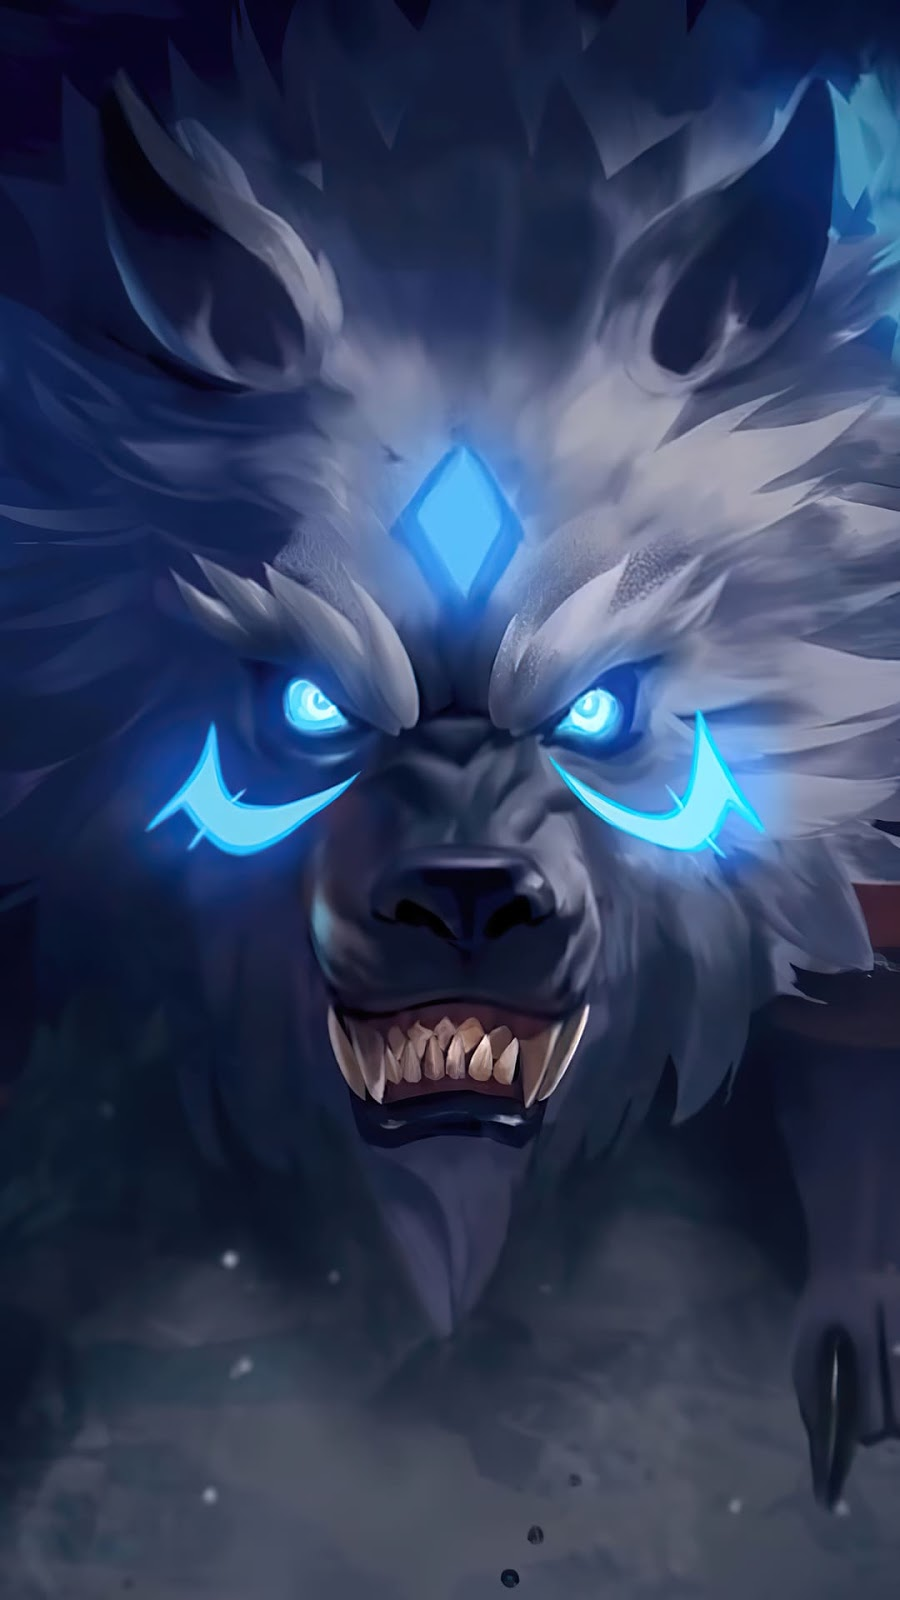 Wallpaper Popol and Kupa Wolf Mobile Legends HD for Android and iOS